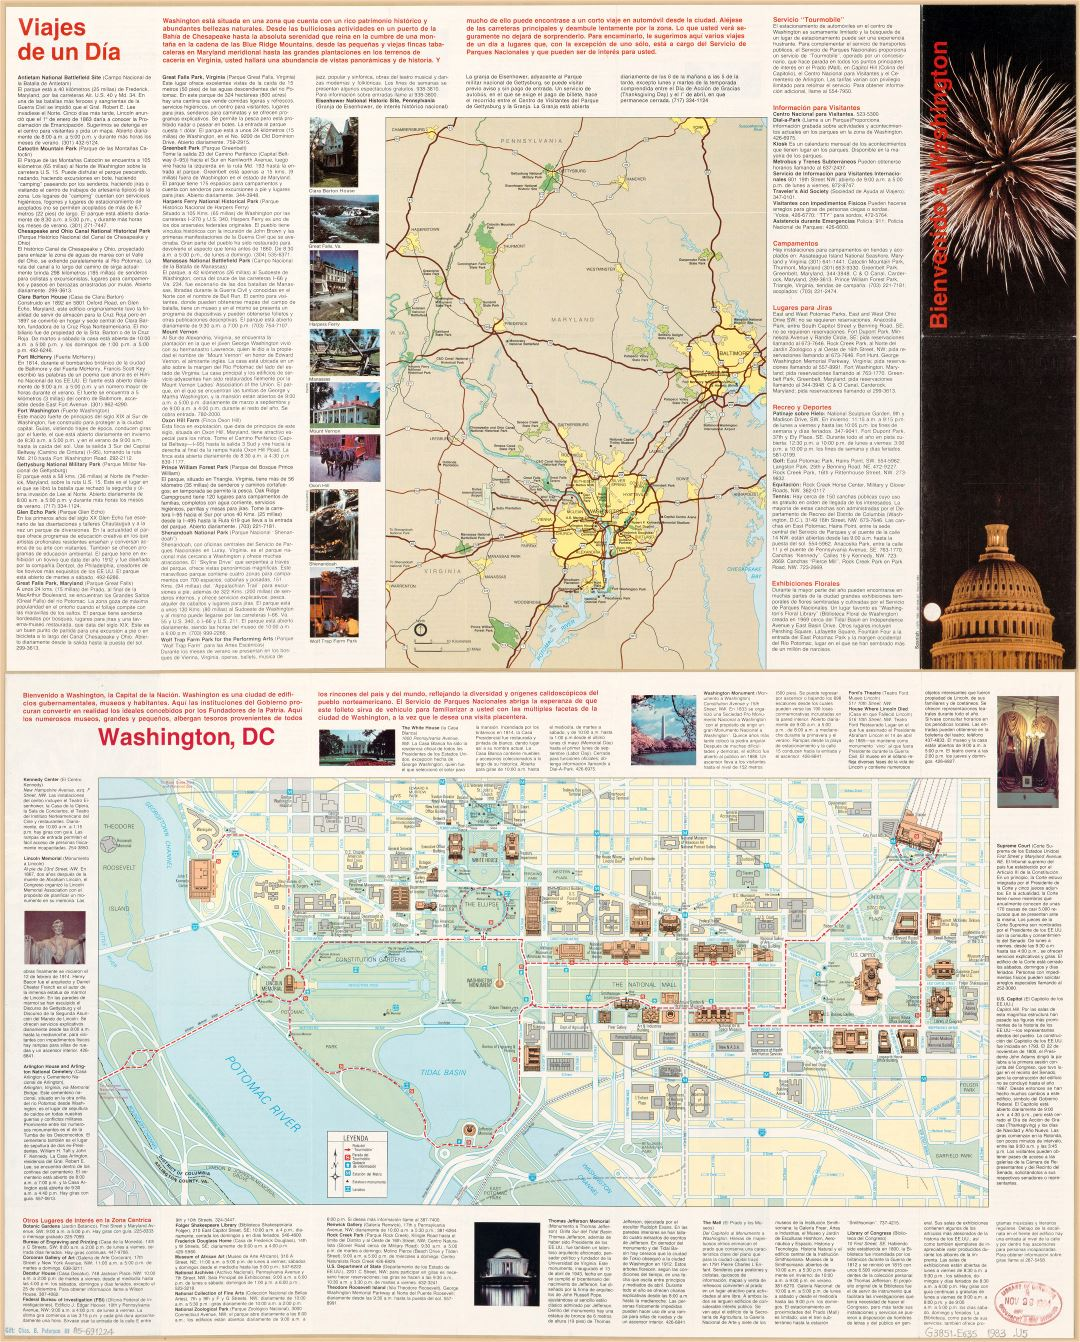 Large scale tourist map of Washington D.C. - 1983